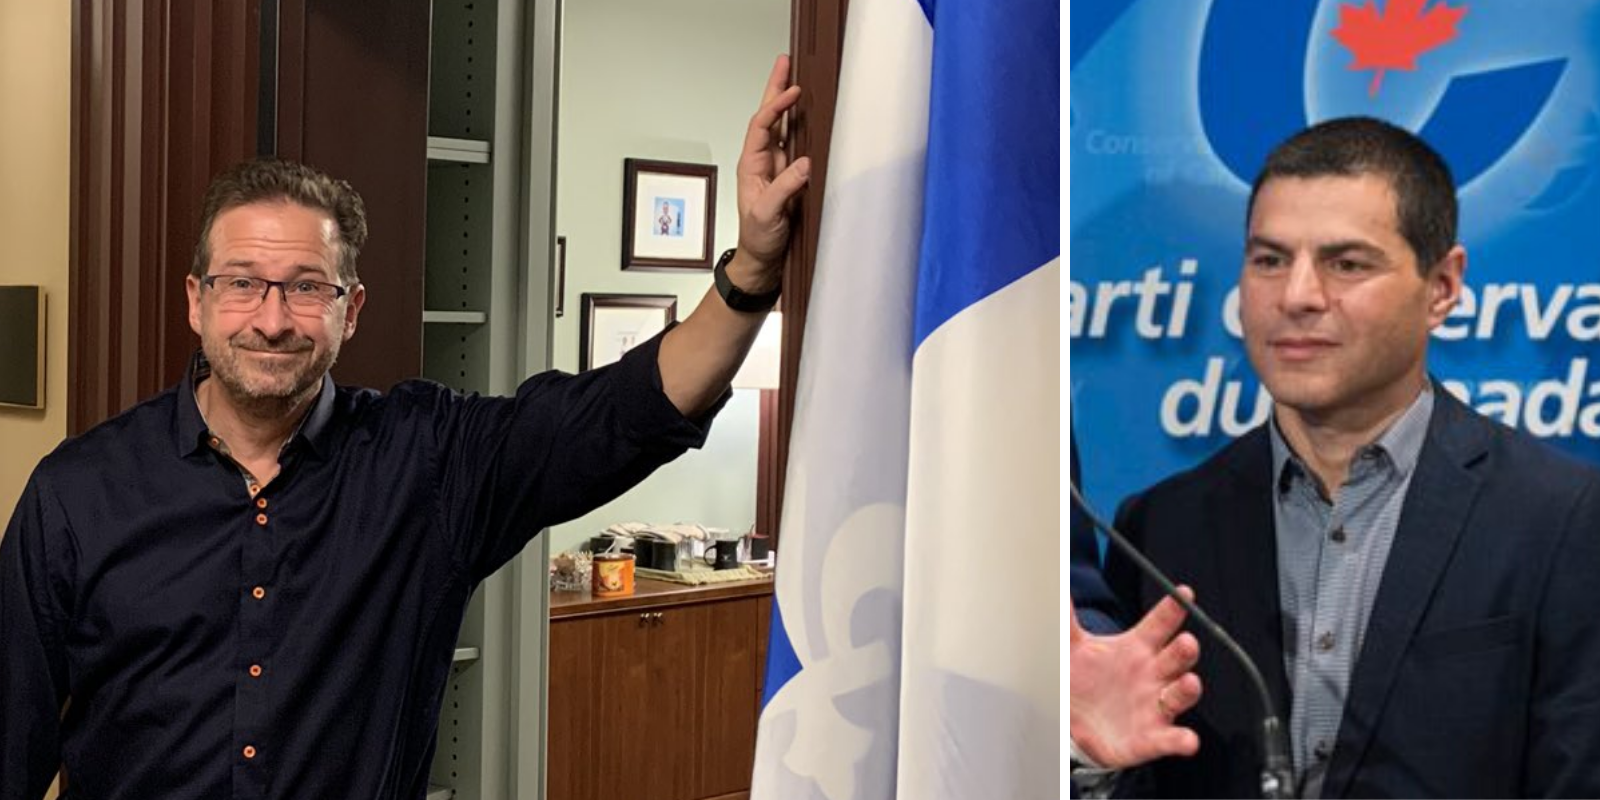 TWITTER BLOCK QUEBECOIS: Blanchet blocks Conservative MPs on Twitter for no reason